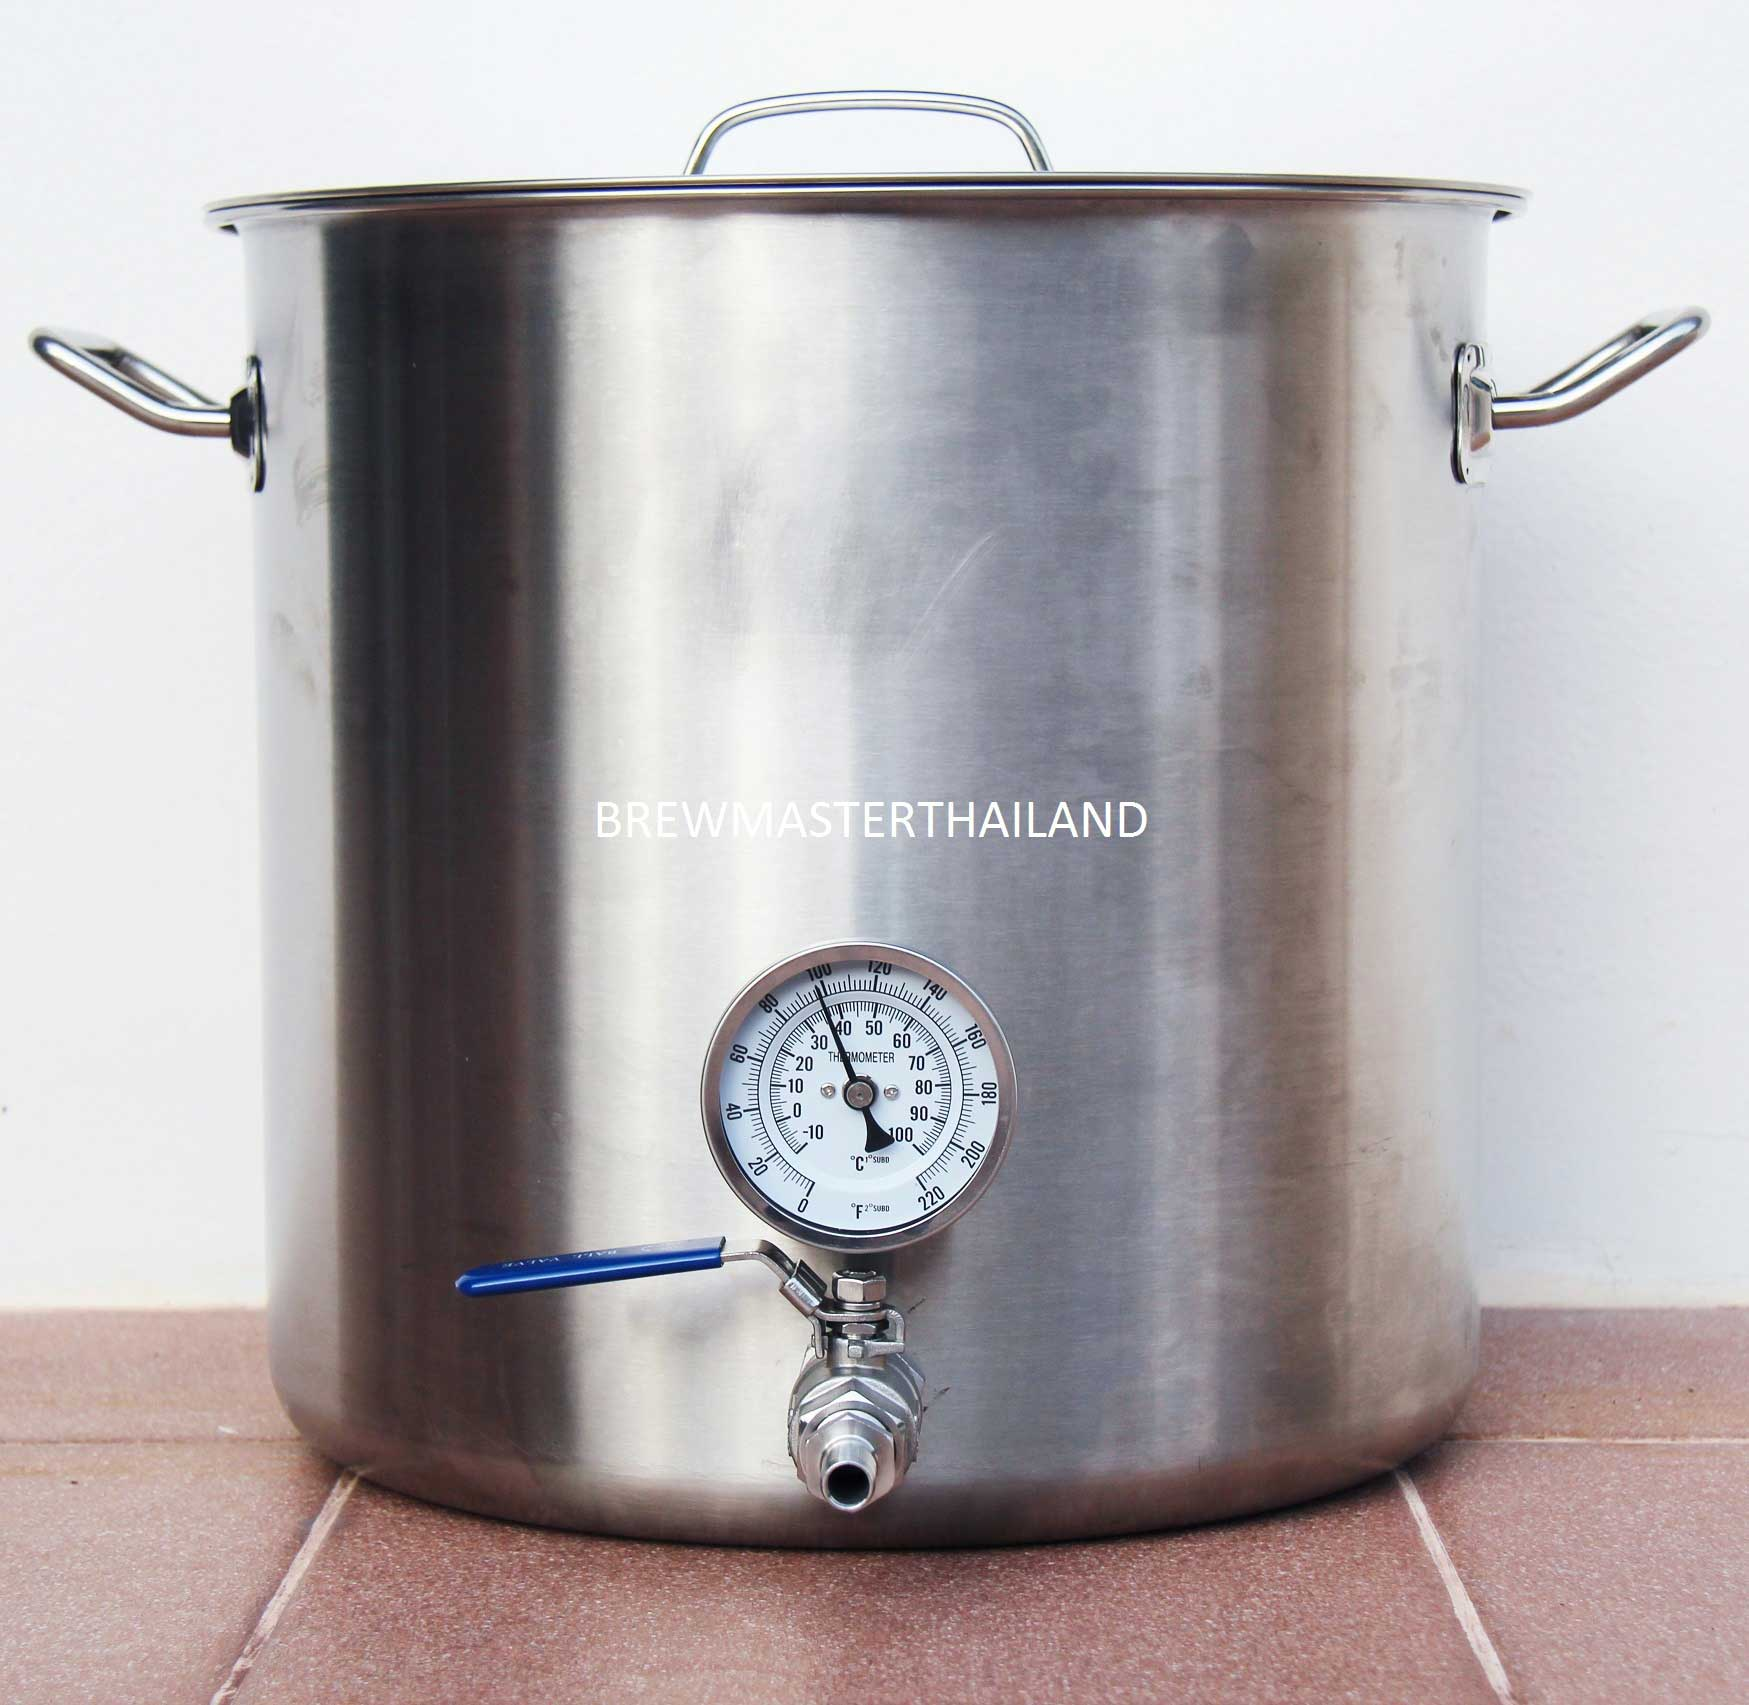 Brew Kettle - 9 gal with Valve and built-in Thermometer